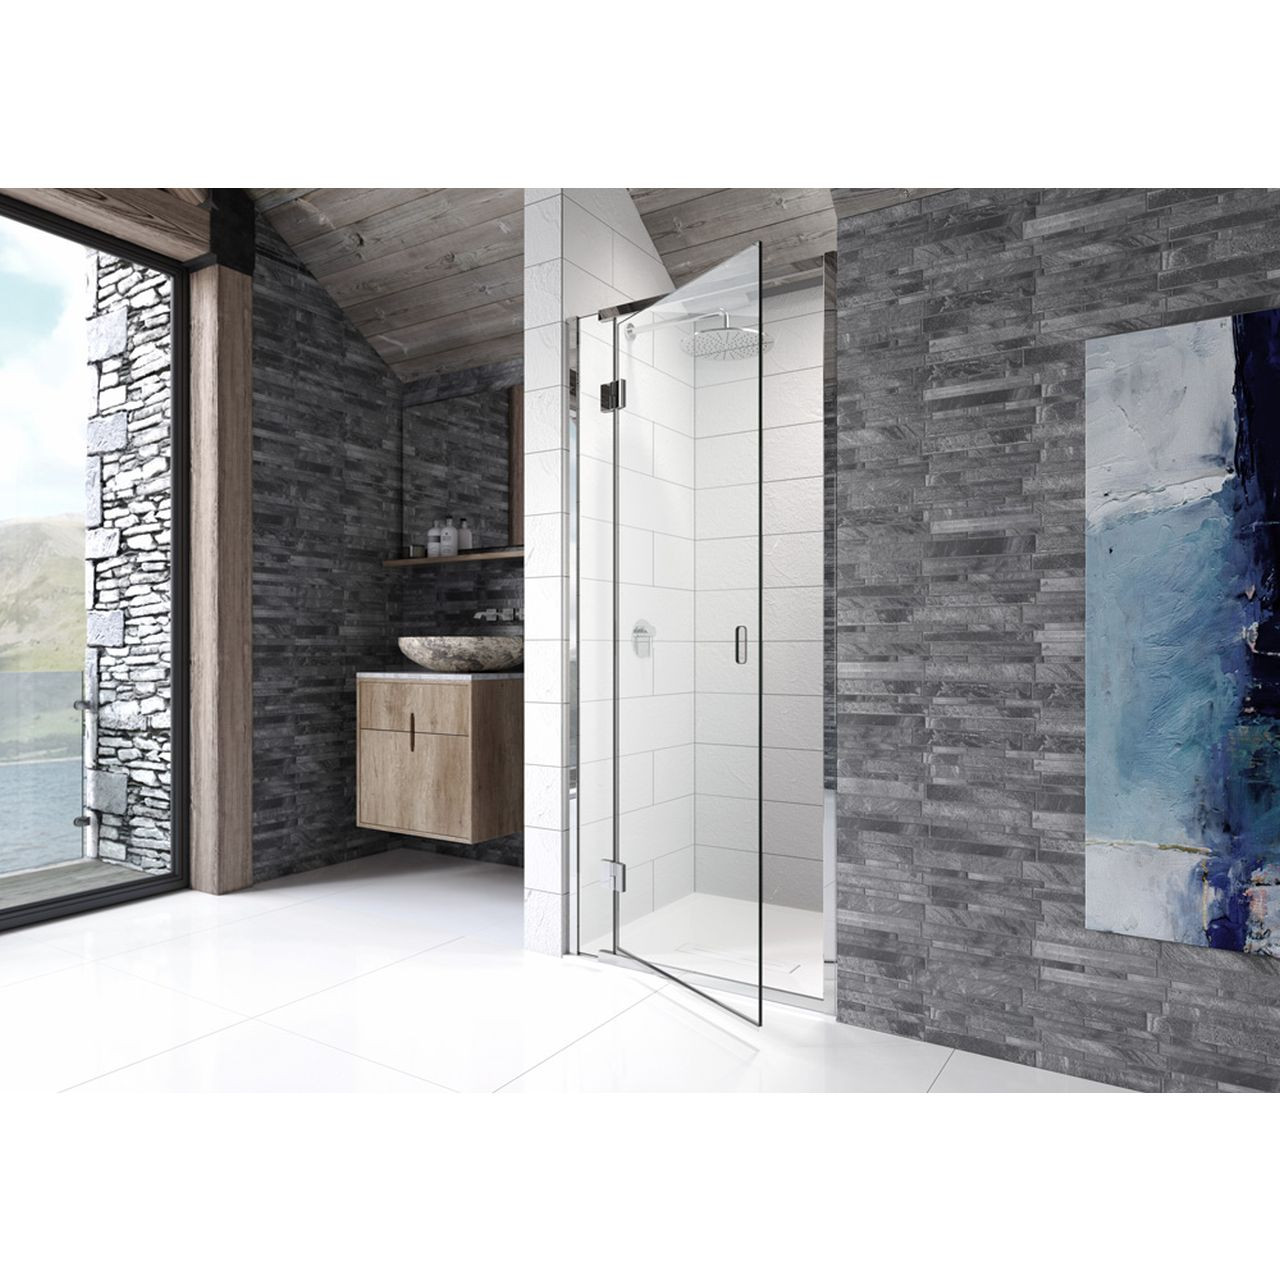 Kudos Pinnacle8 900mm Right Hand Hinged Shower Door For Recess Installation P8hr90r